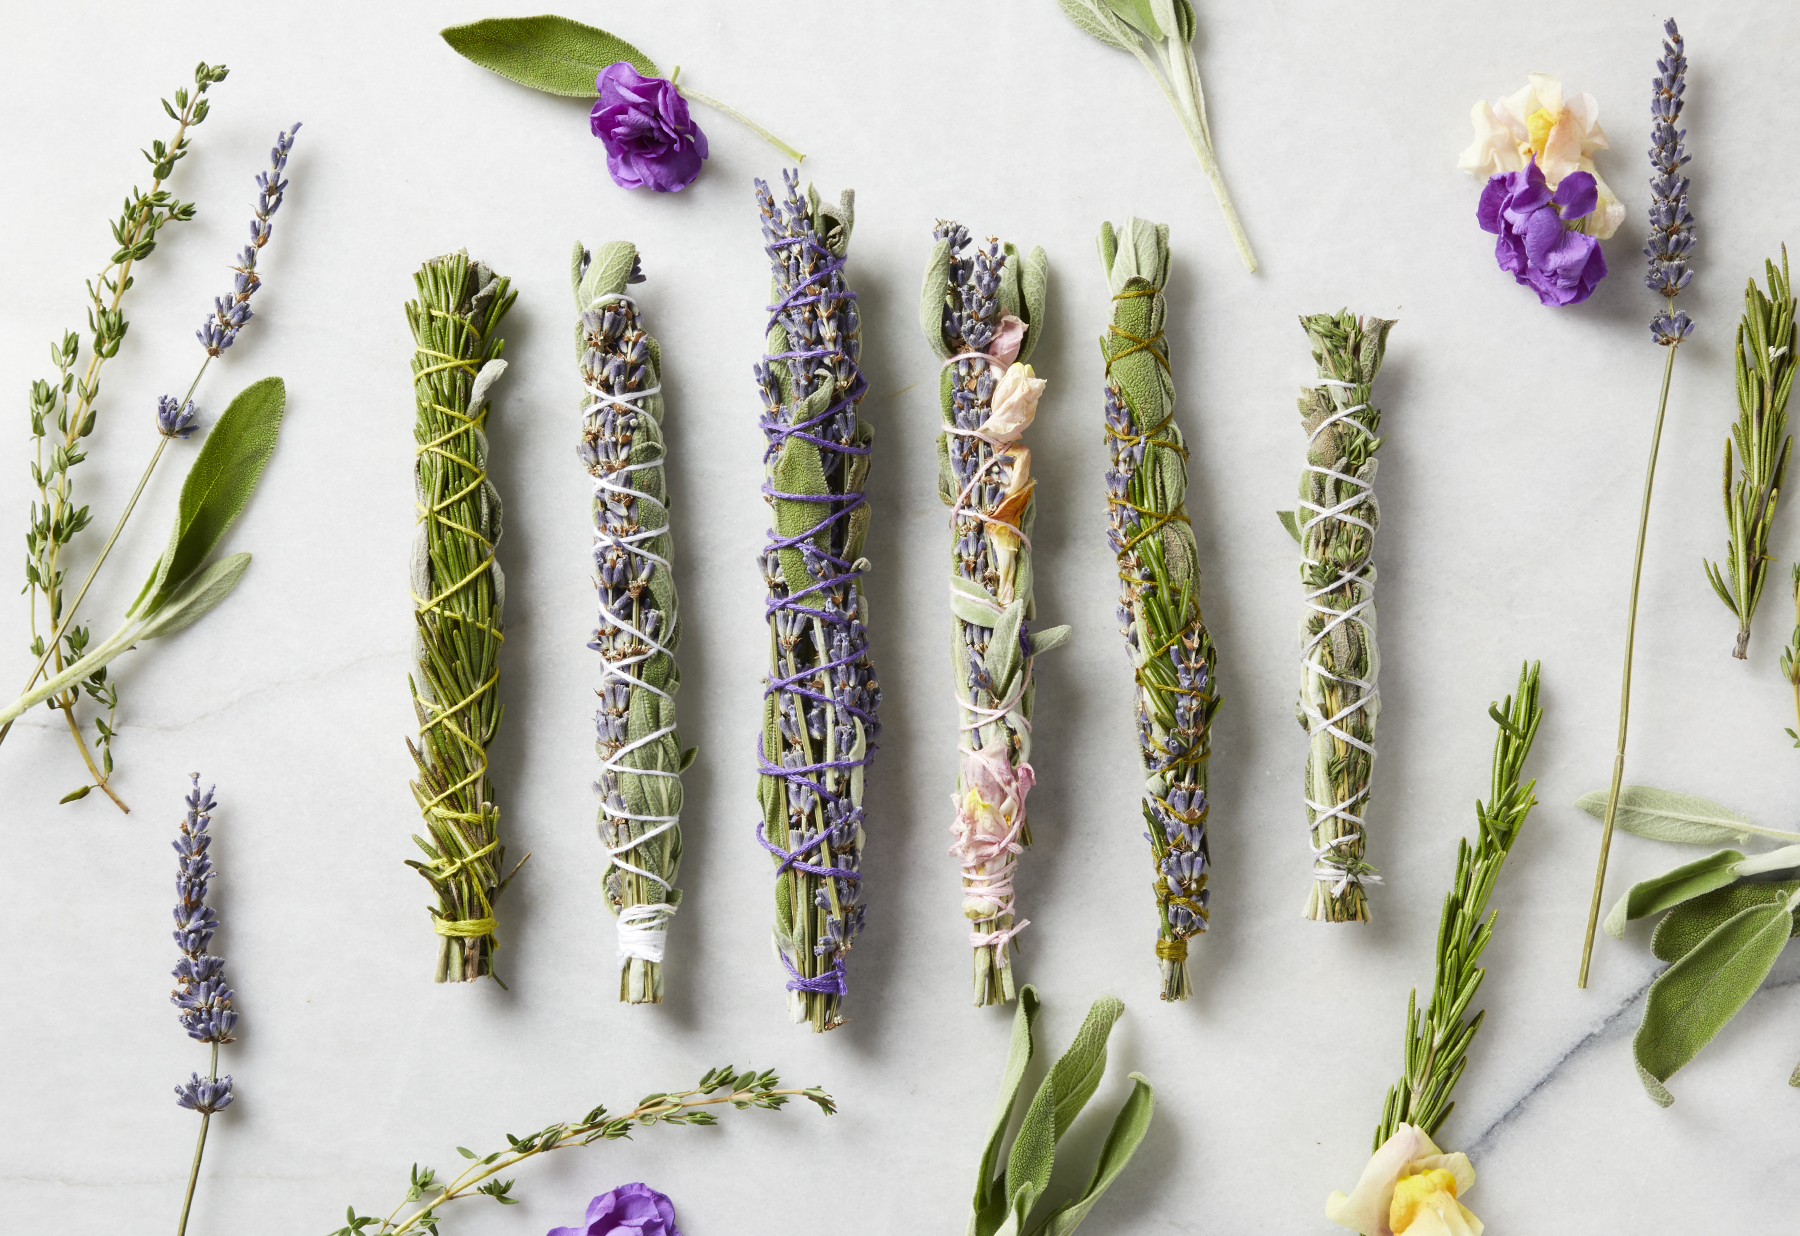 Burning Sage: What Does It Do for You?